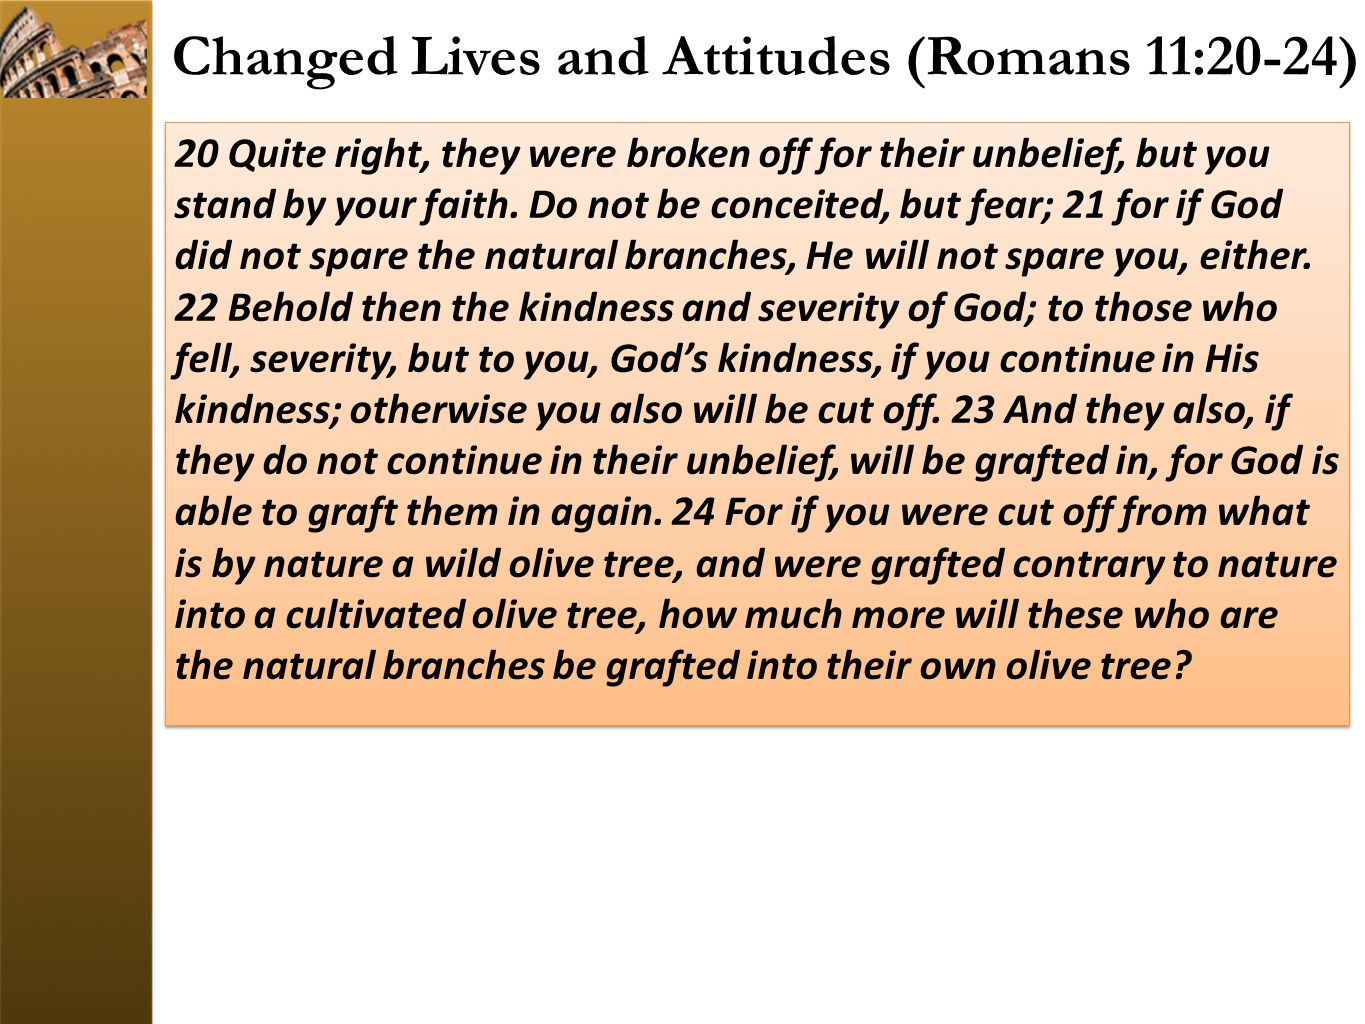 Changed Lives and Attitudes (Romans 11:20-24)